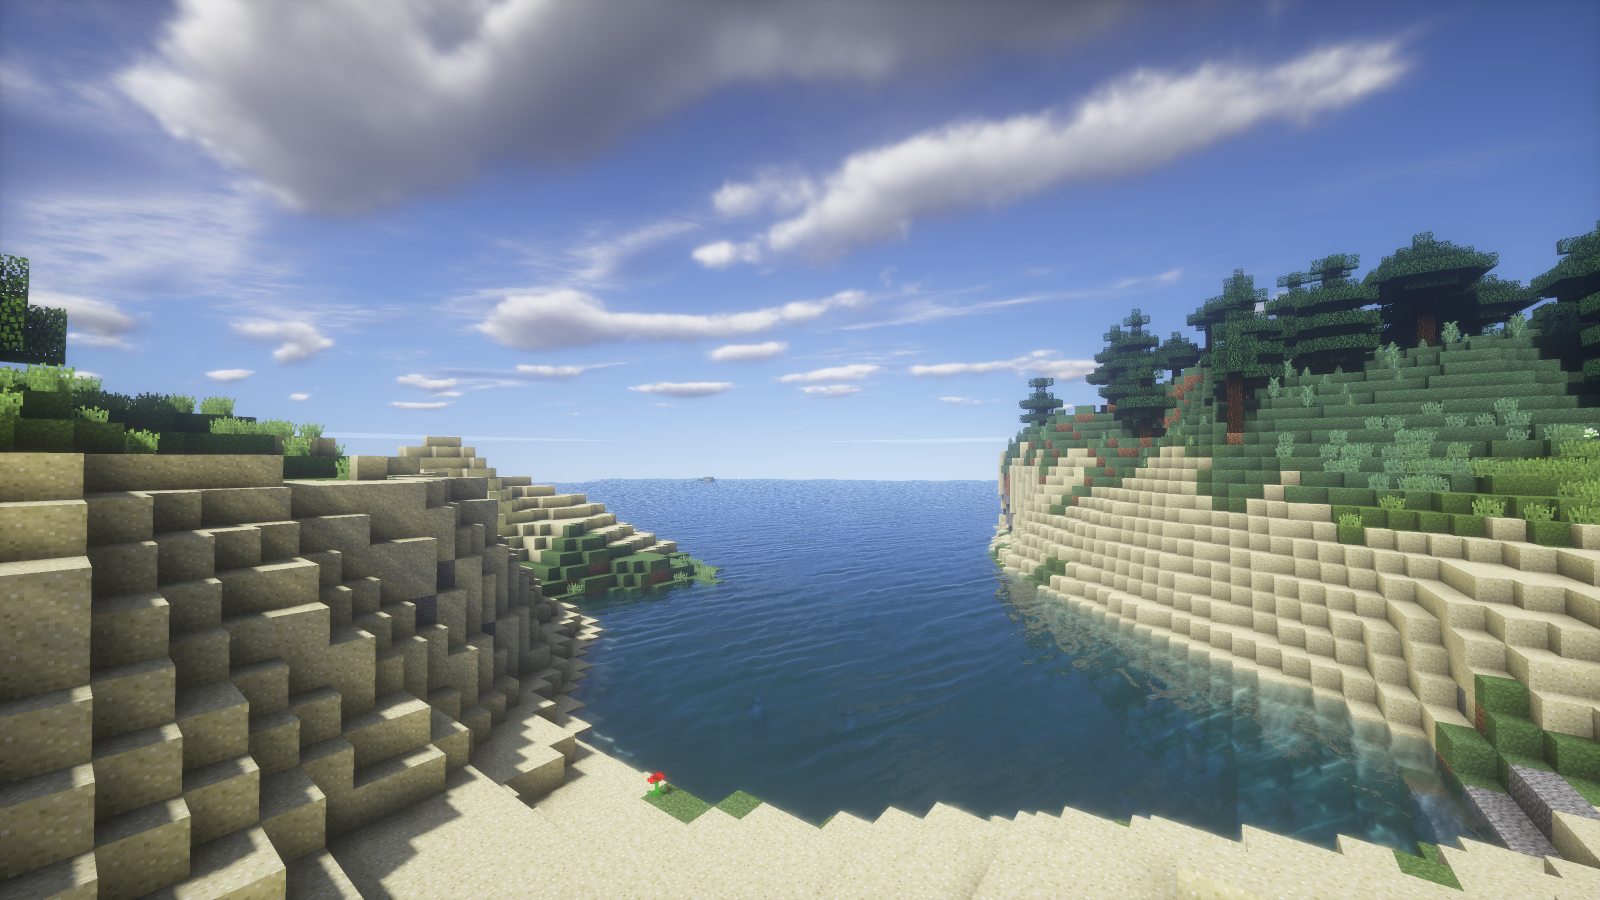 Hd Minecraft 壁纸and 背景 1600x900 Id 722655 Wallpaper Abyss